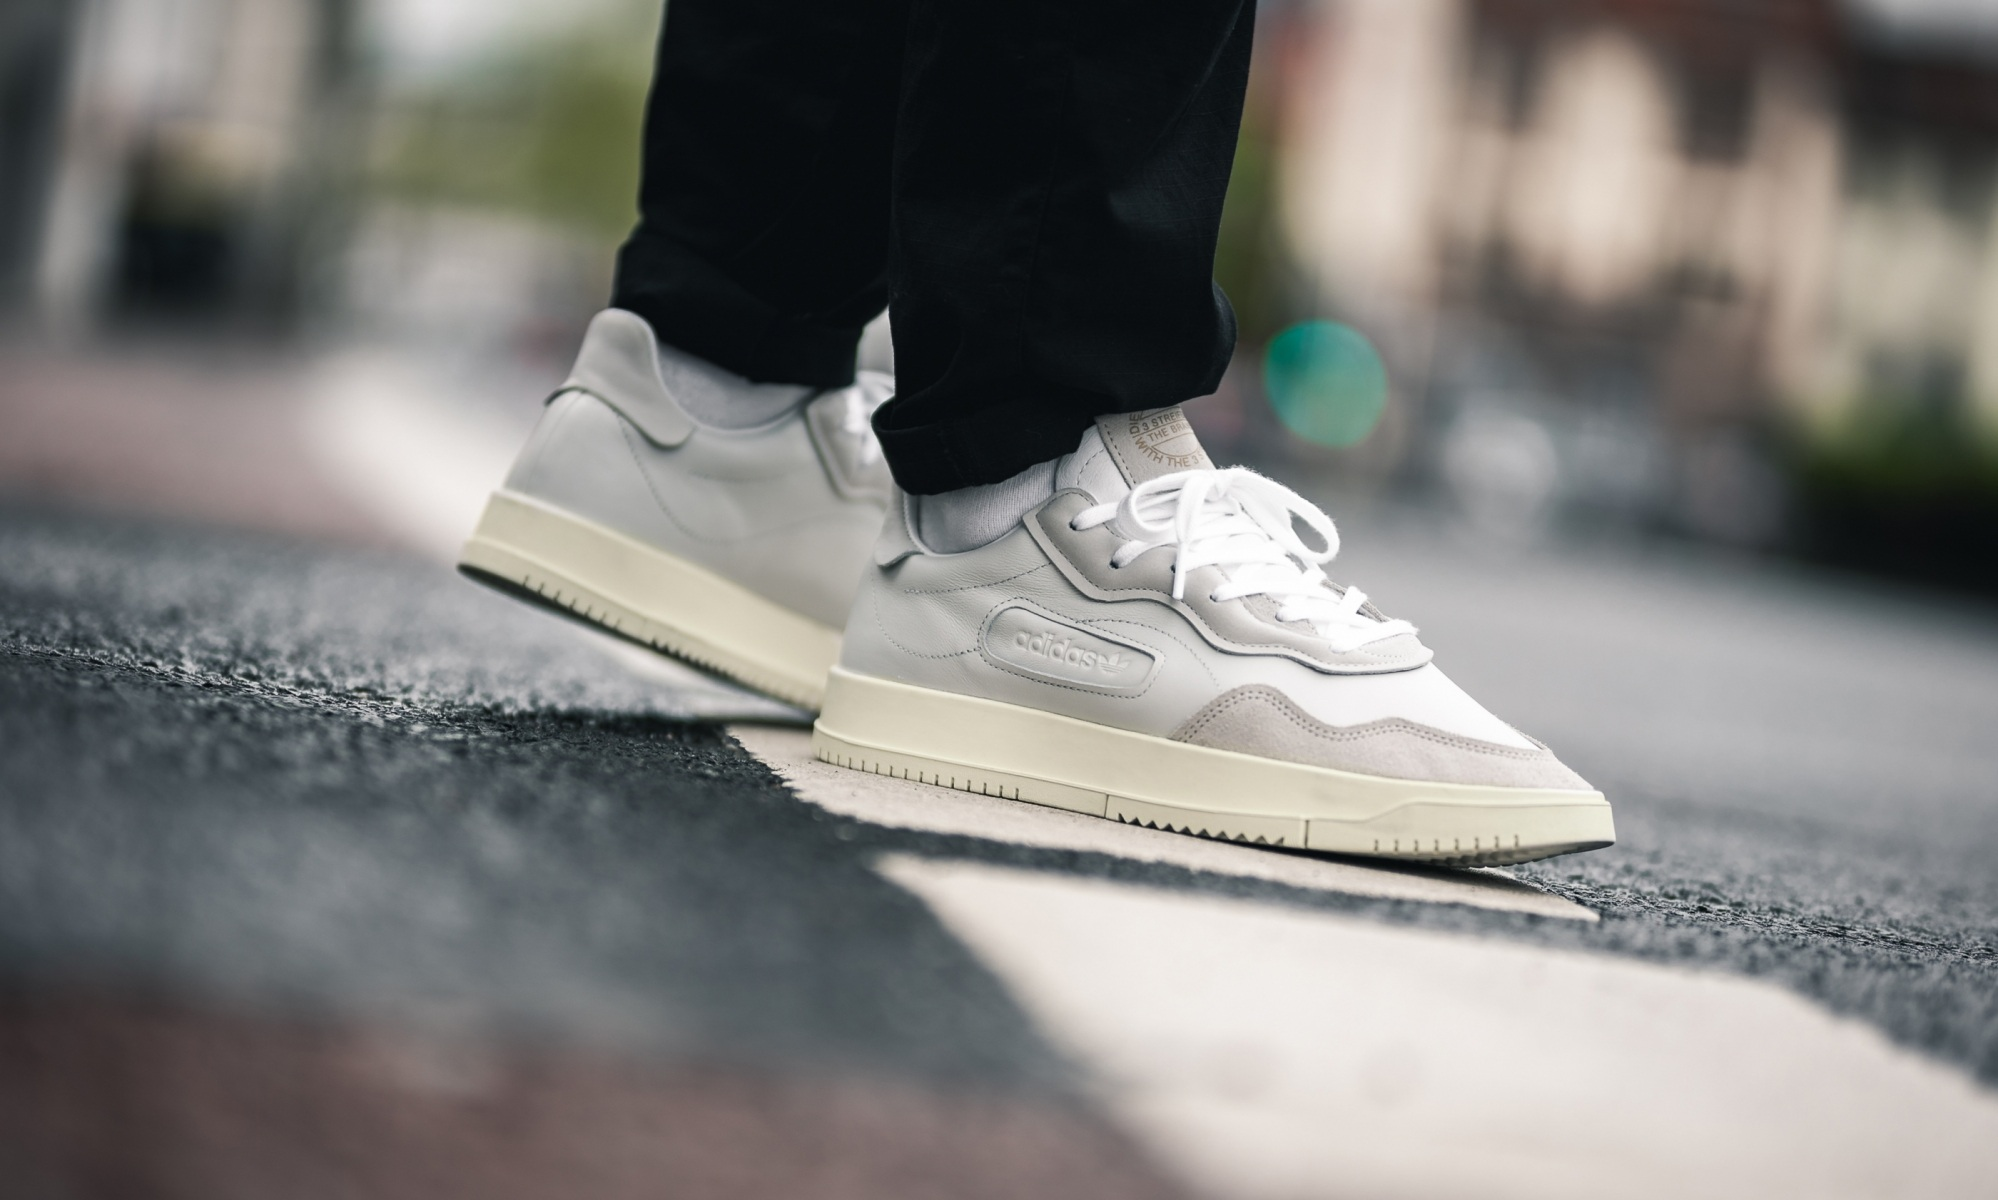 Stock Crystal Sc Premiere WhiteDead Adidas Sneakerblog 53RjAqcL4S